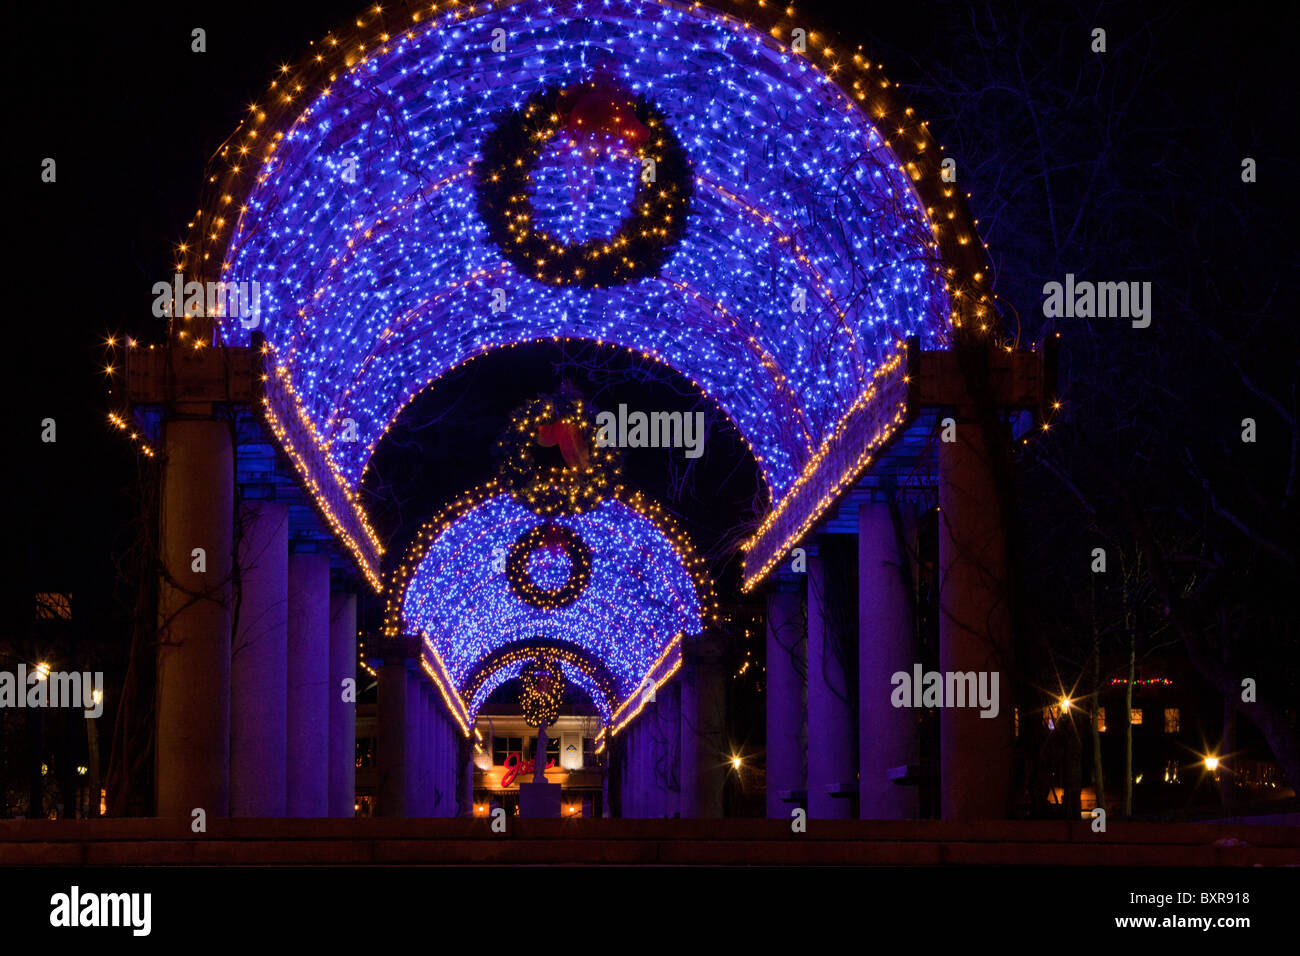 Christmas decorations - illuminated walkway - in the city of Boston, Ma, USA - Stock Image